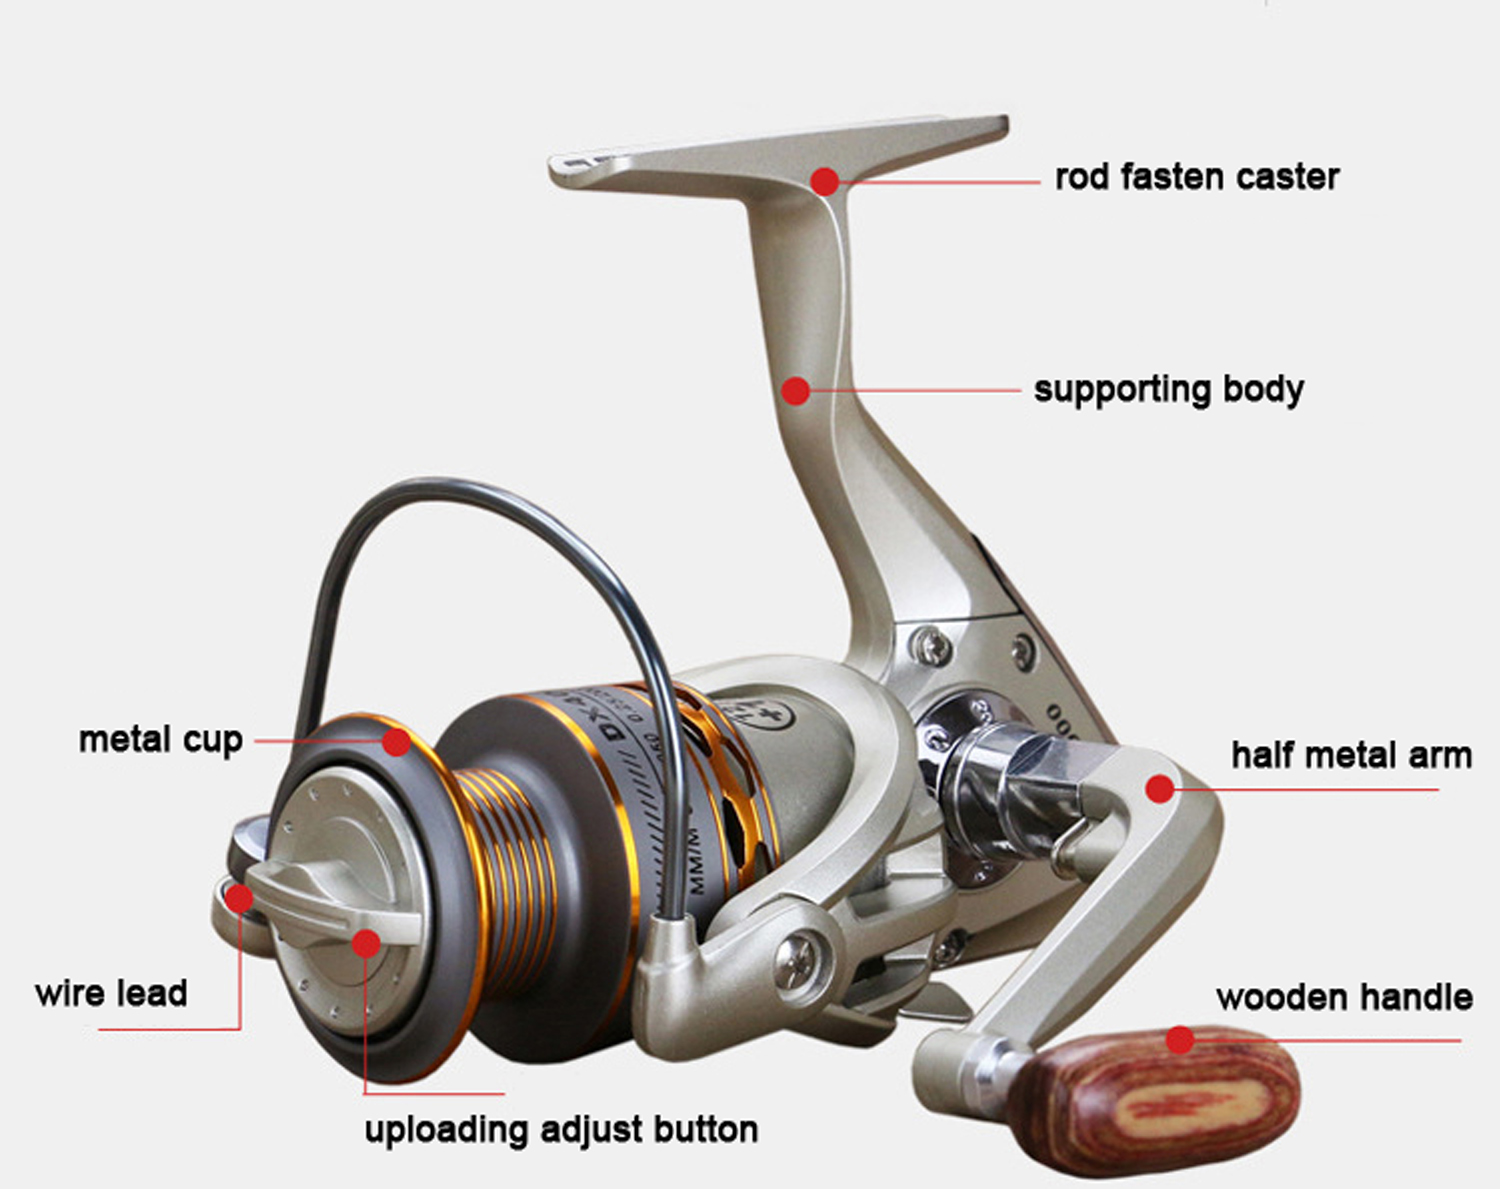 13-axis Metal Head Fishing Reel Wooden Handle Wholesale Interchangeable Arm Fishing Reel Fishing Tackle